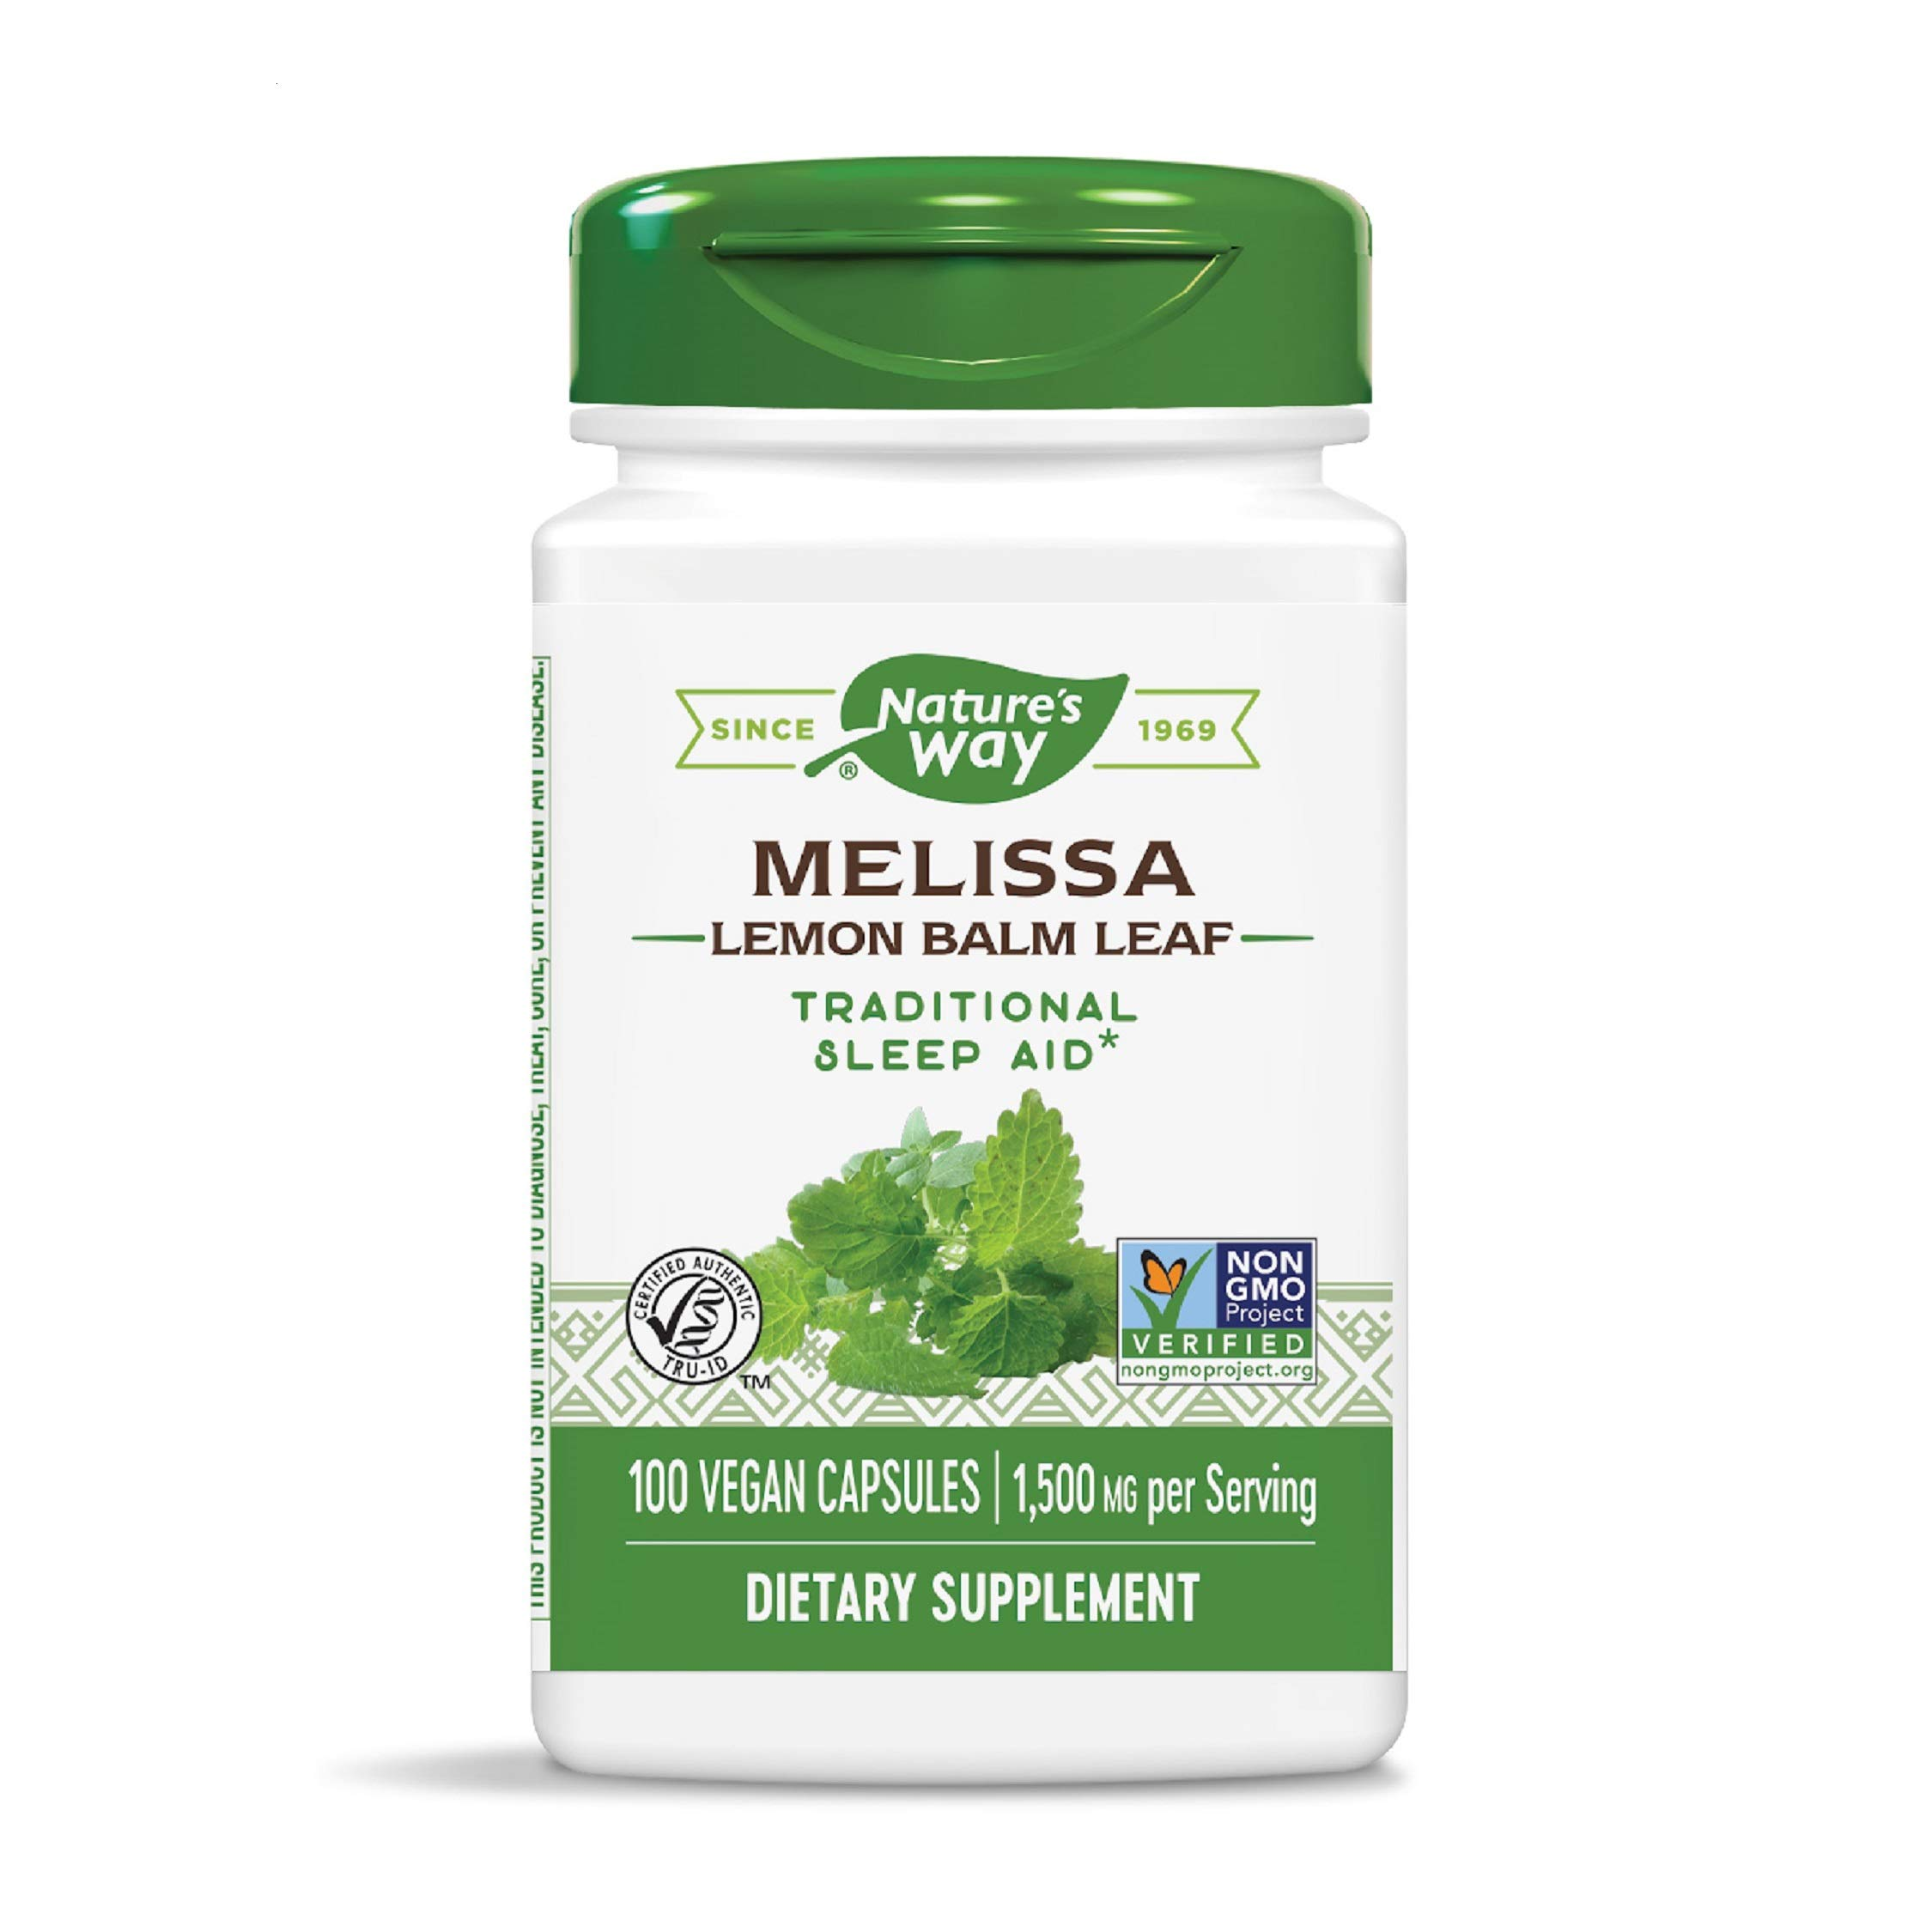 Nature's Way Premium Herbal Melissa Lemon Balm Leaf, 1,500 mg per serving, 100 Capsules